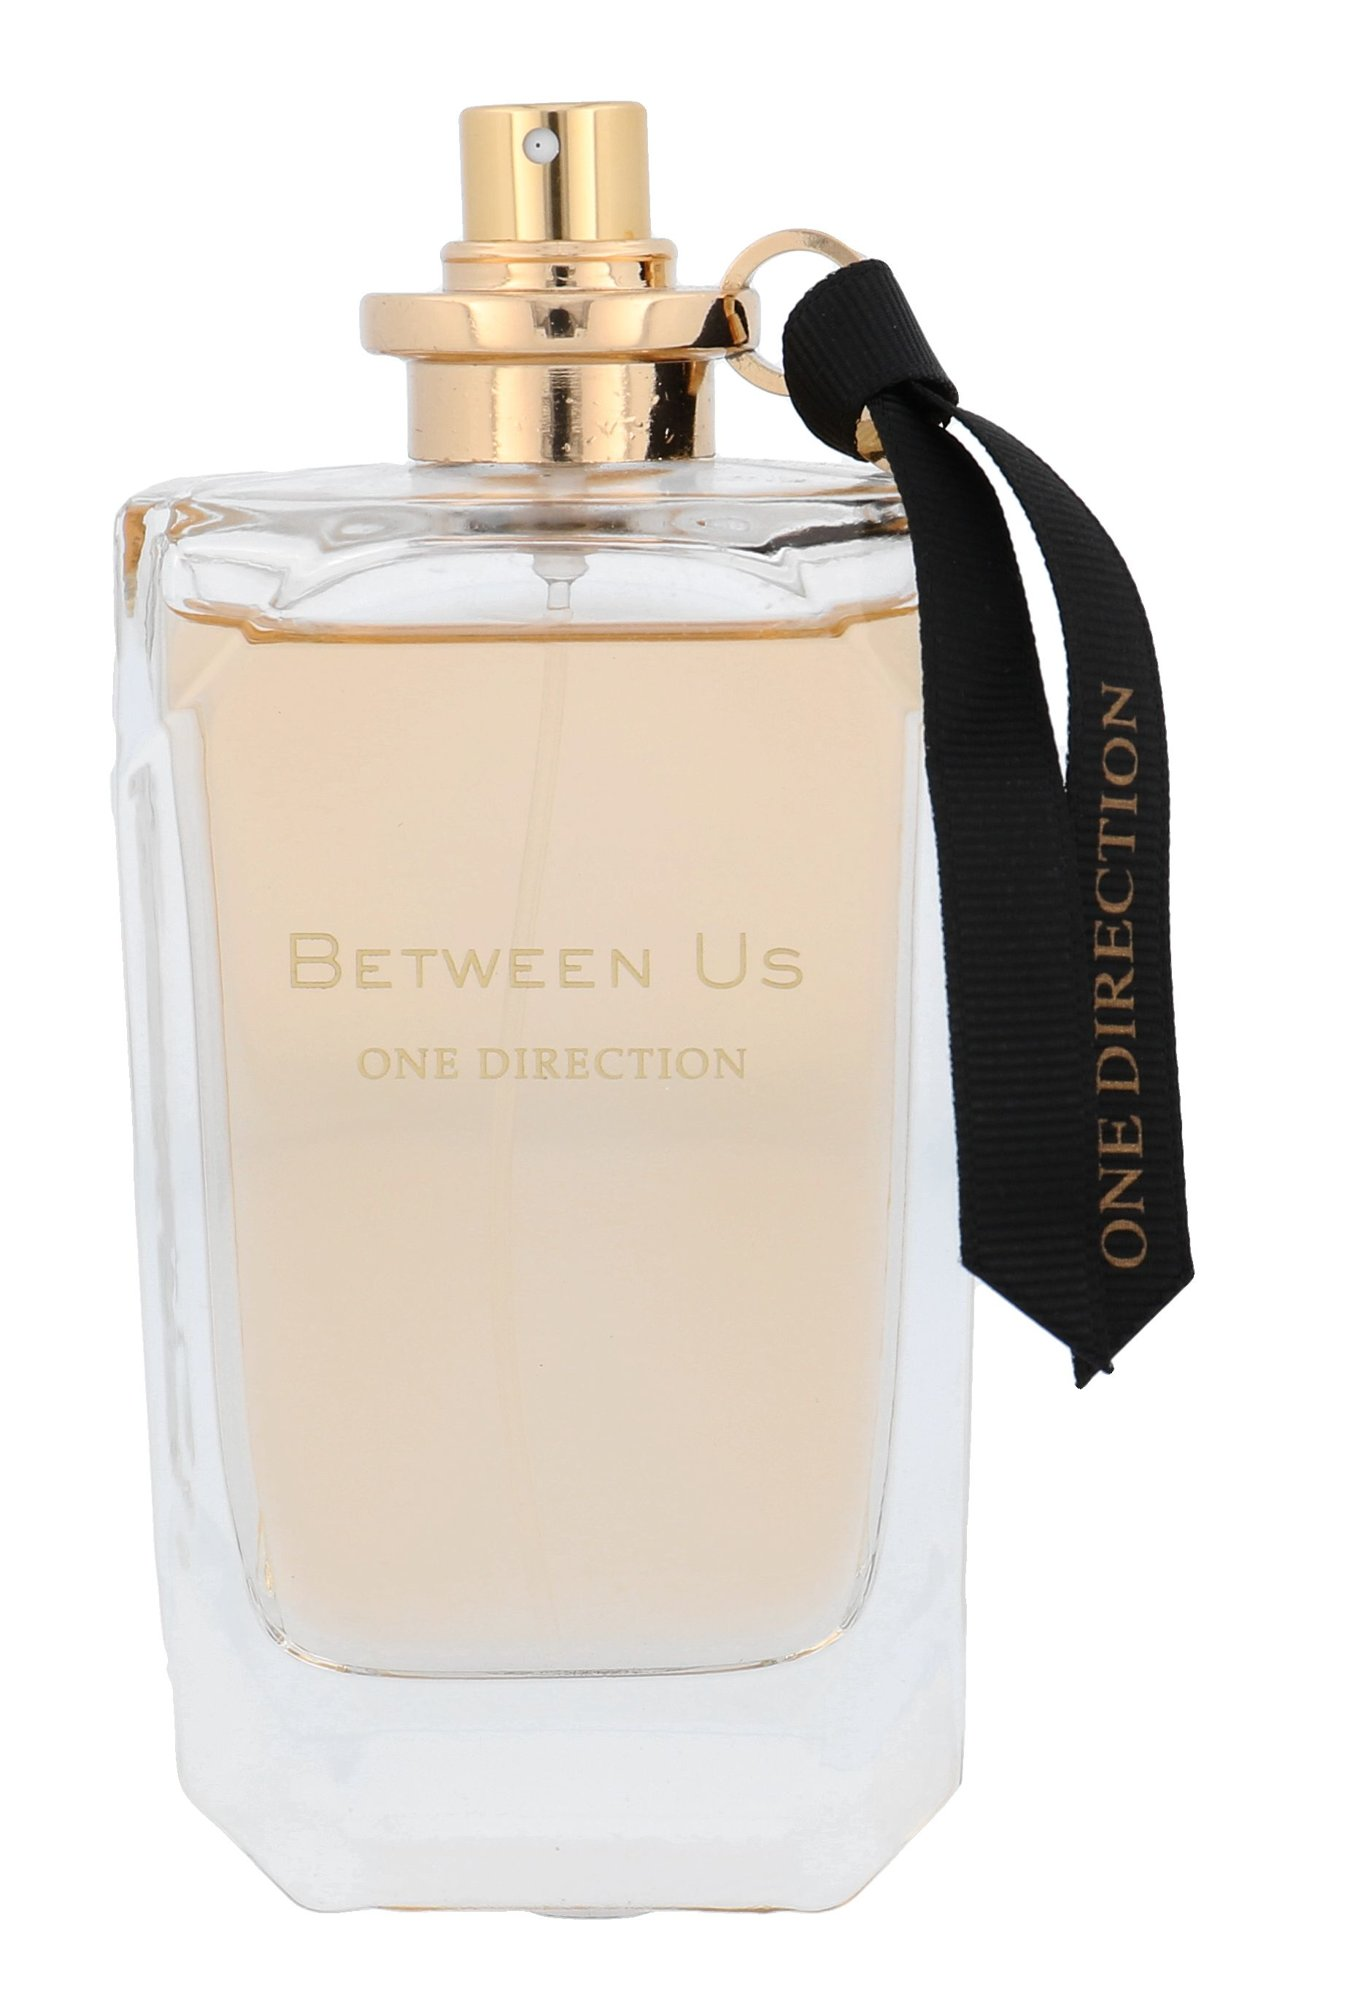 One Direction Between Us EDP 100ml